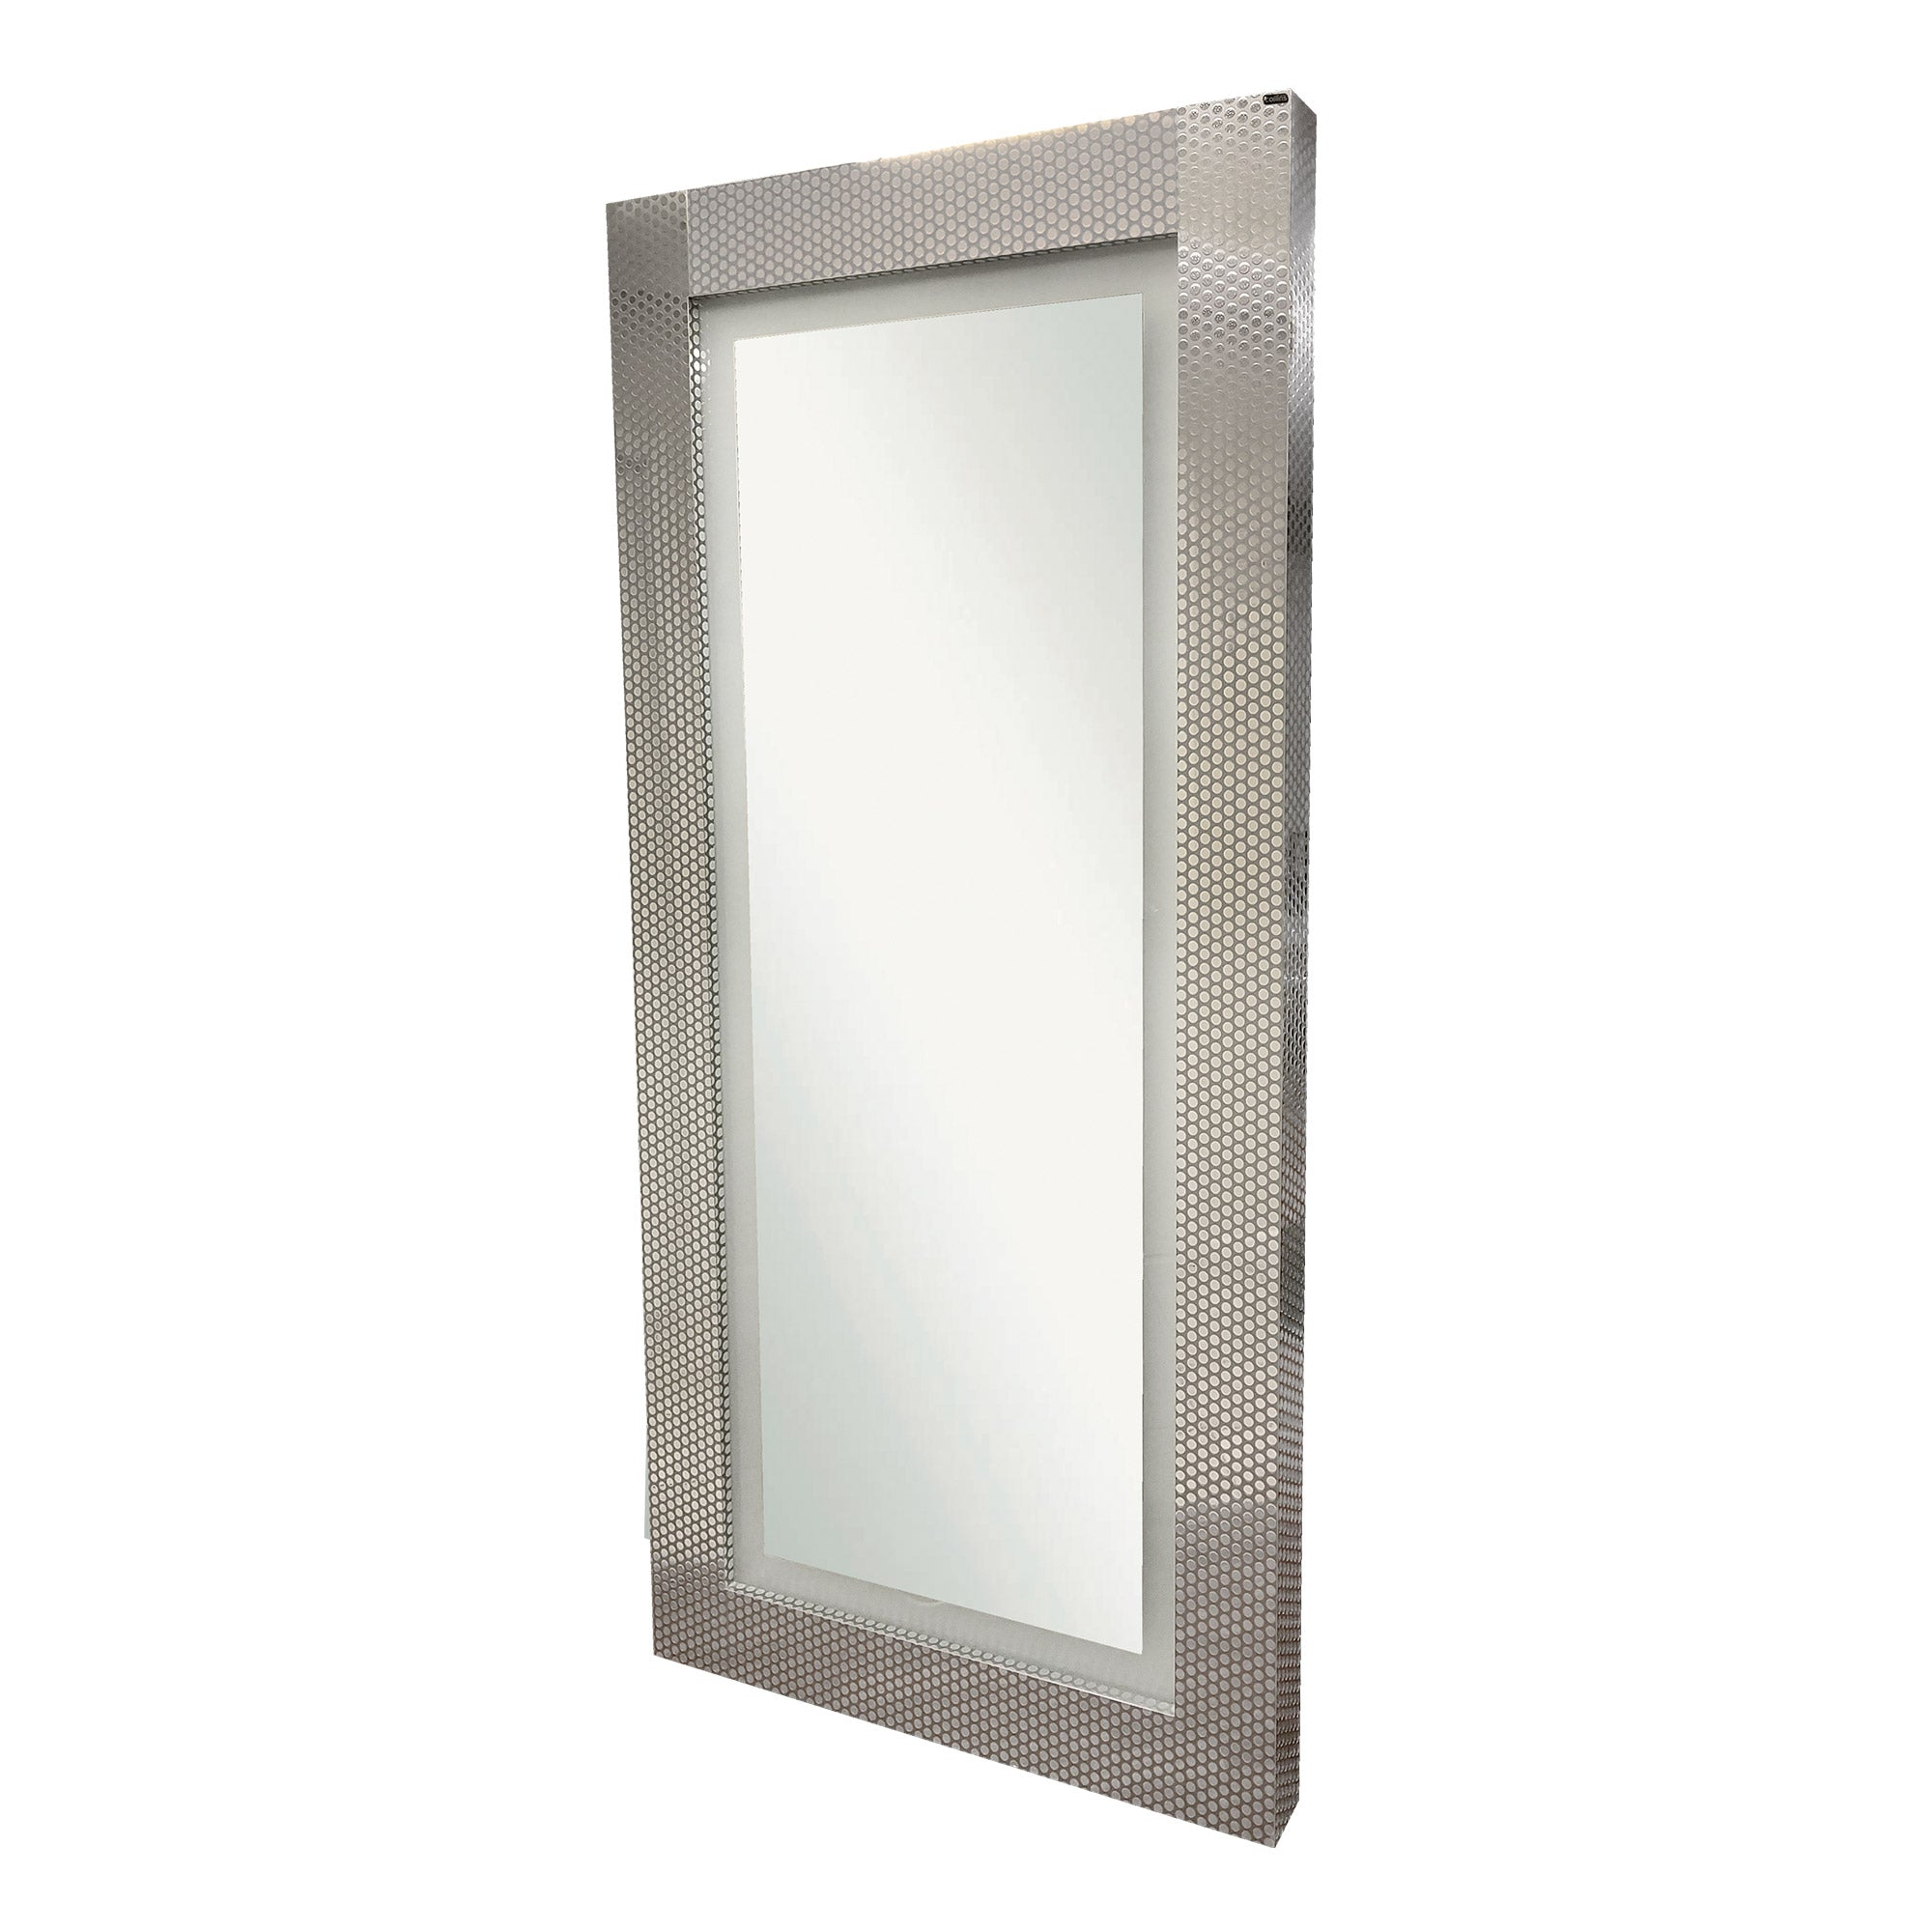 Zada XW LED-Lit Mirror - Collins